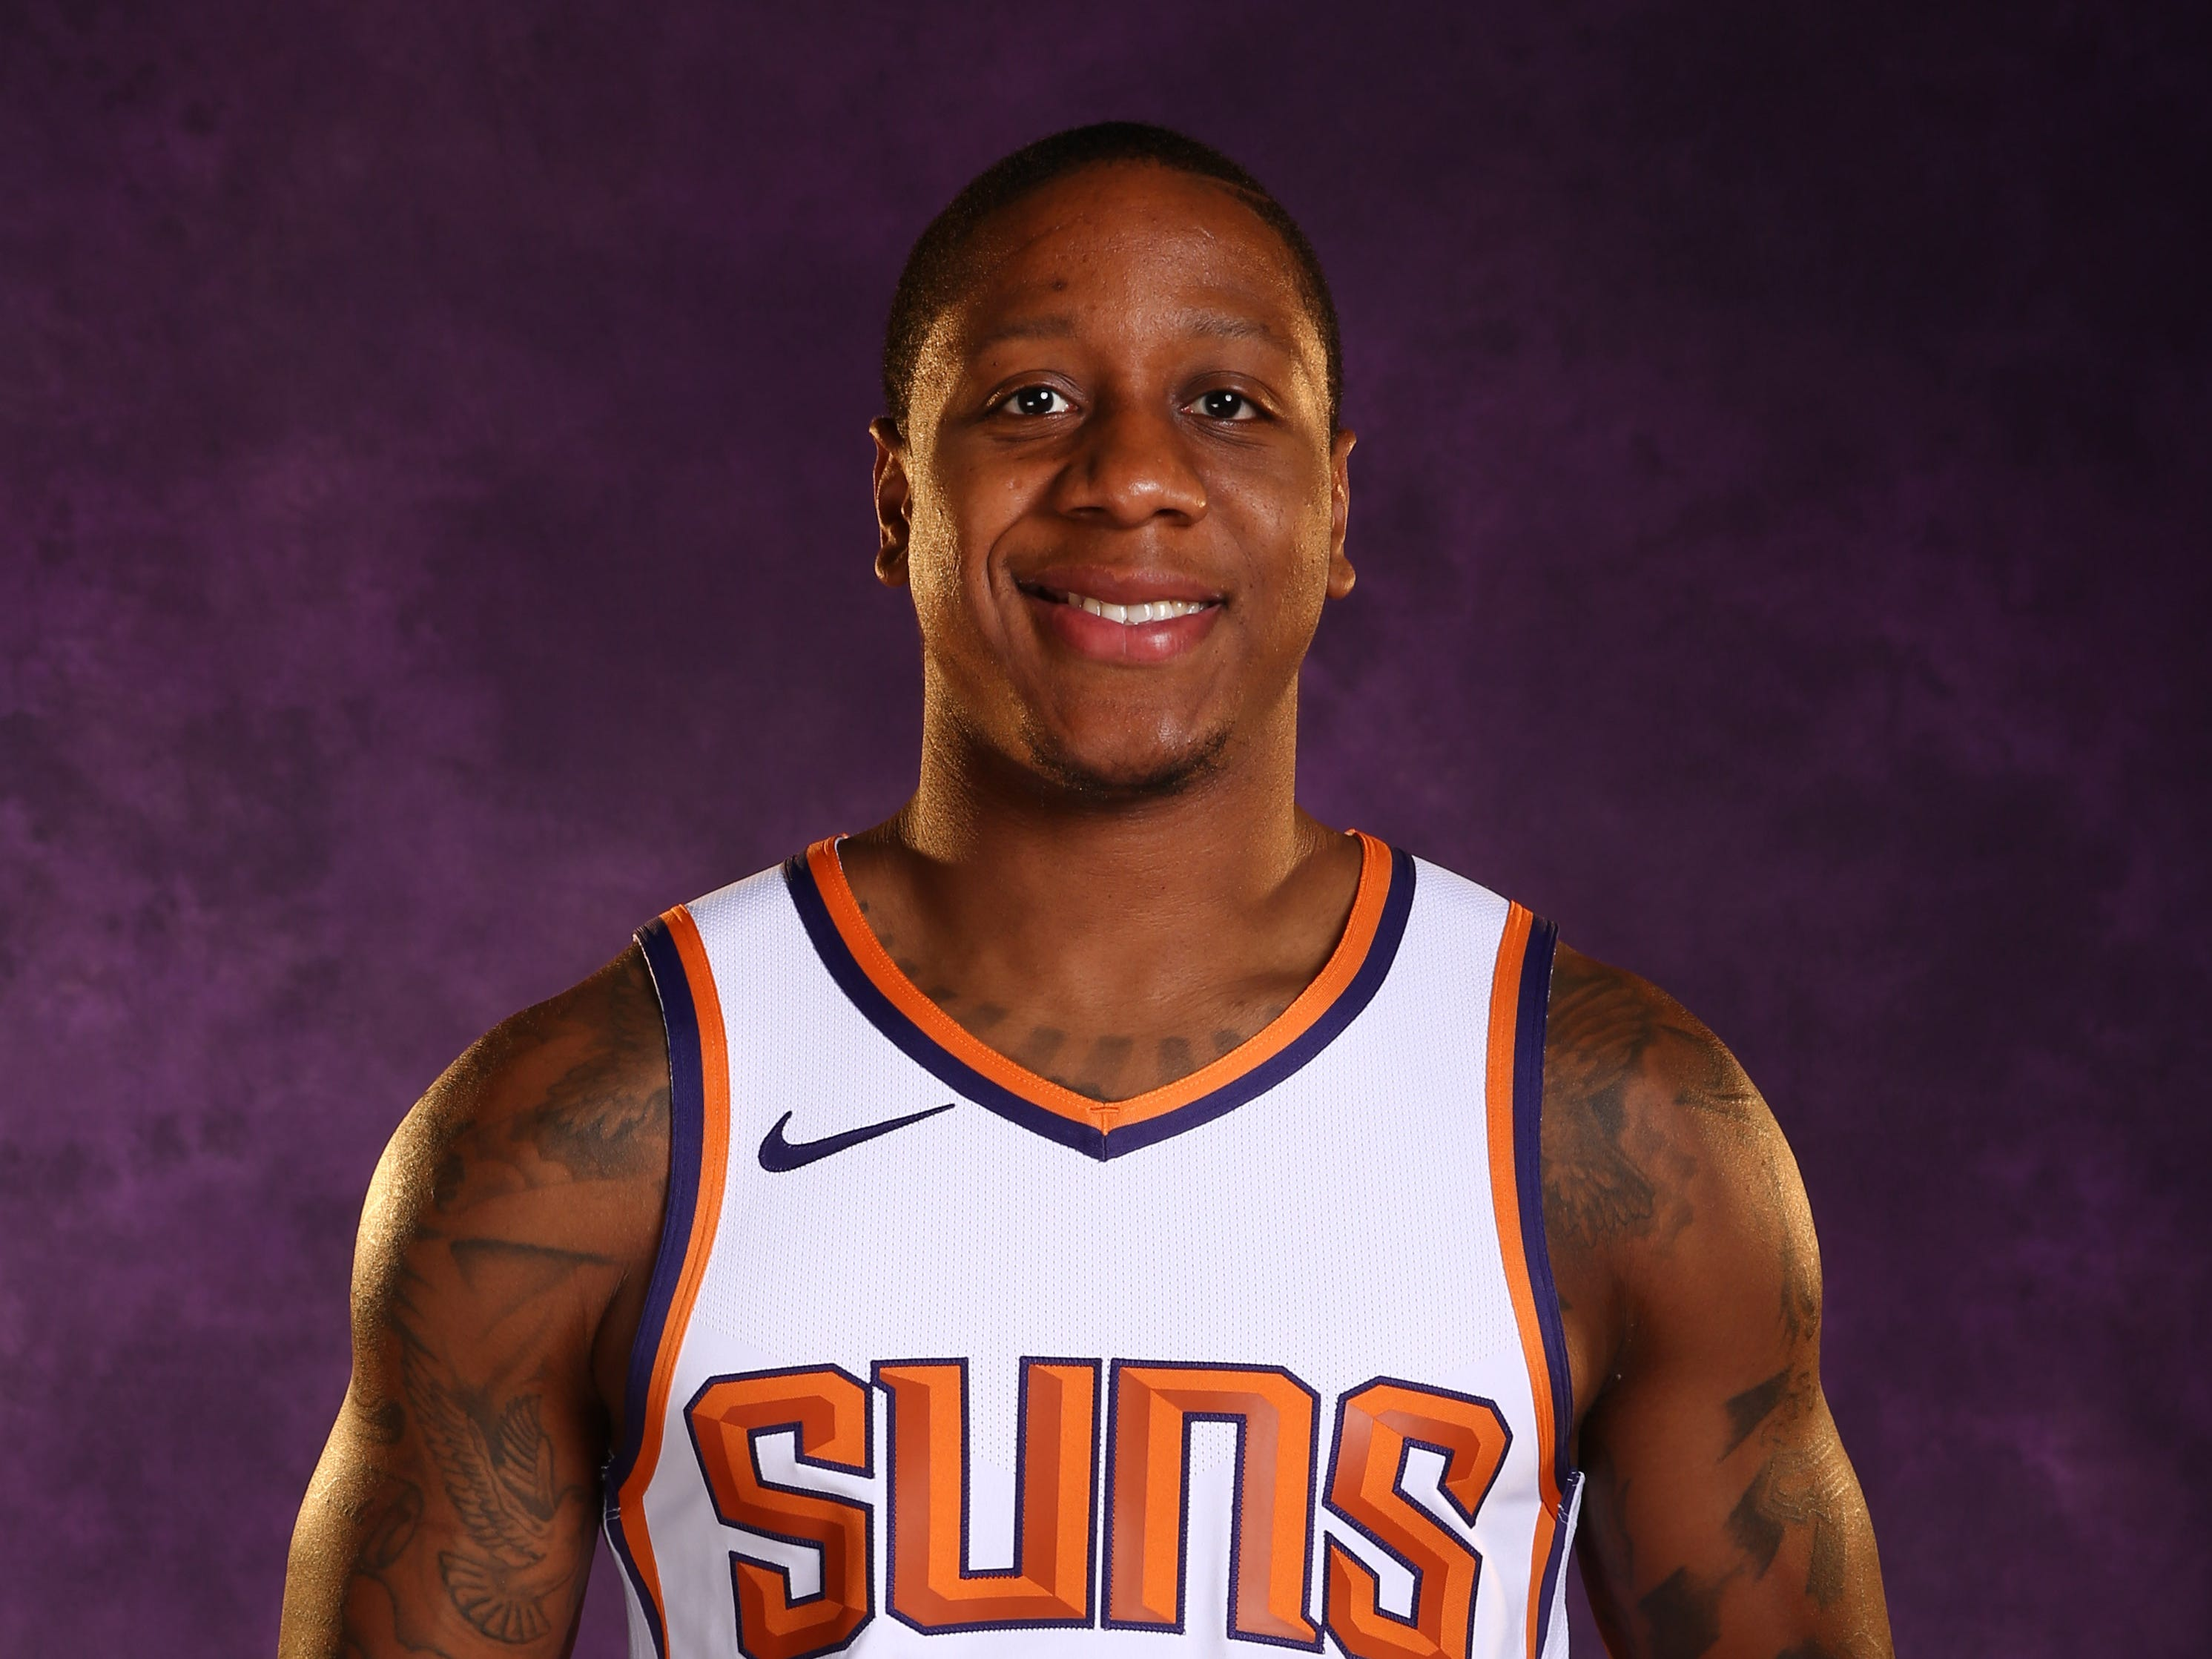 Phoenix Suns guard Isaiah Canaan during media day at Talking Stick Resort Arena on Sep. 24, 2018, in Phoenix, Ariz.